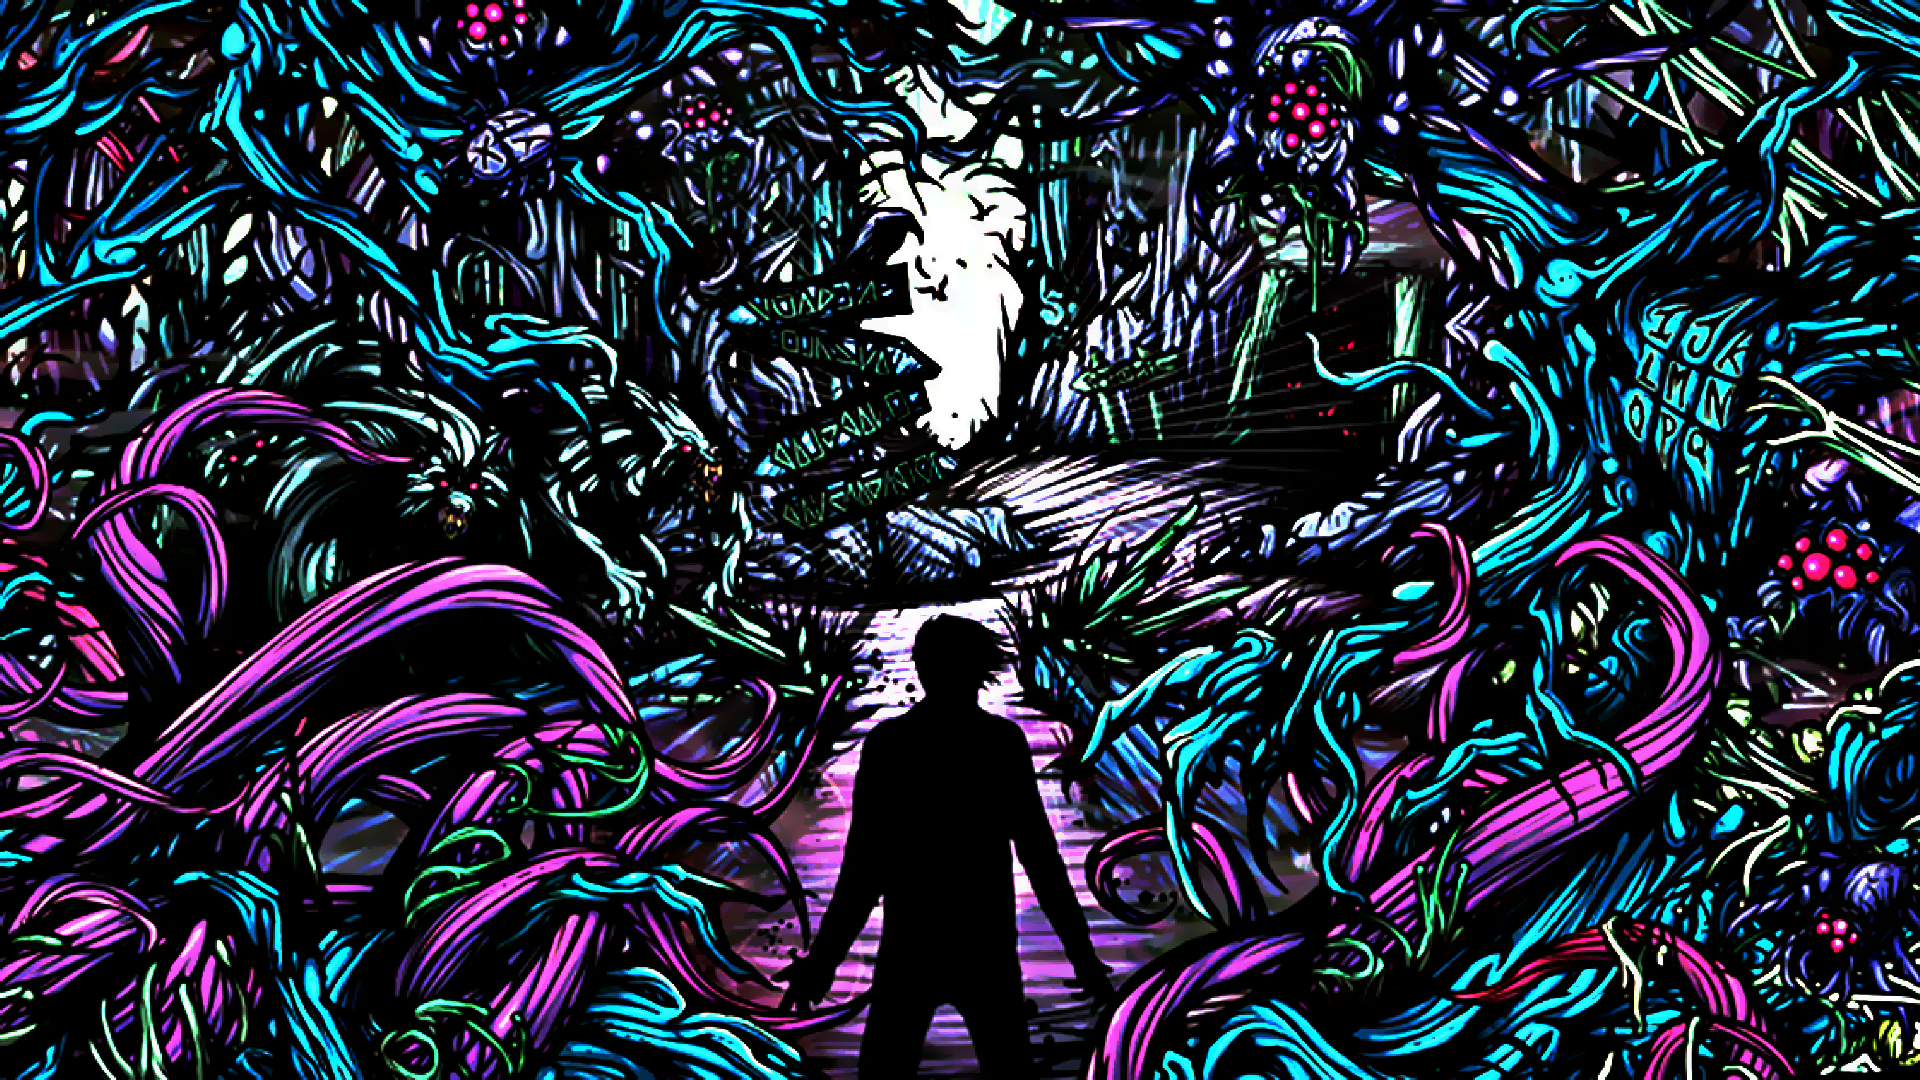 Band Desktop Backgrounds - WallpaperSafari A Day To Remember Homesick Album Cover Black And White